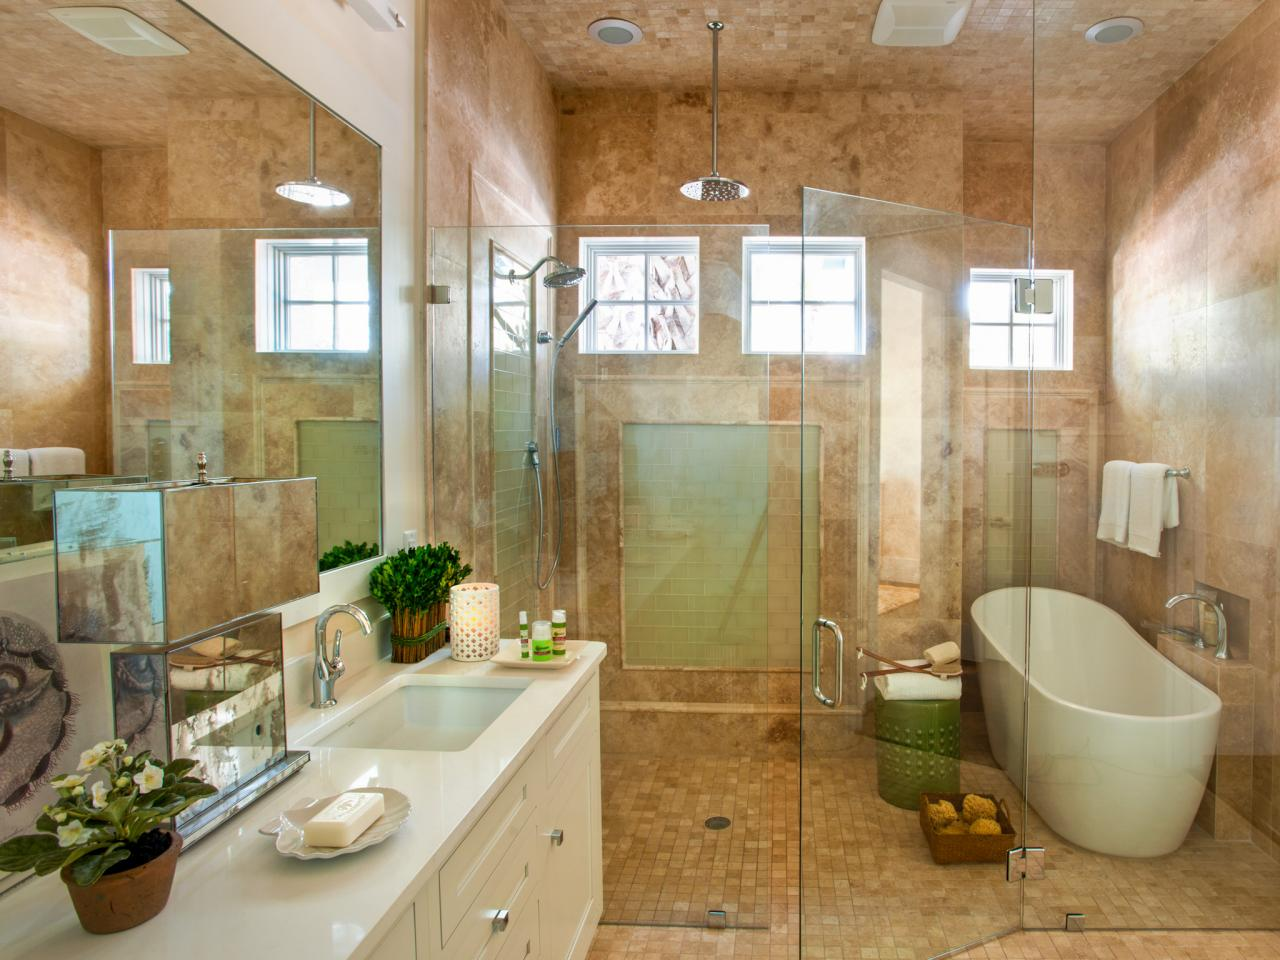 Luxurious Master Bathroom With Freestanding Soaker Tub | HGTV